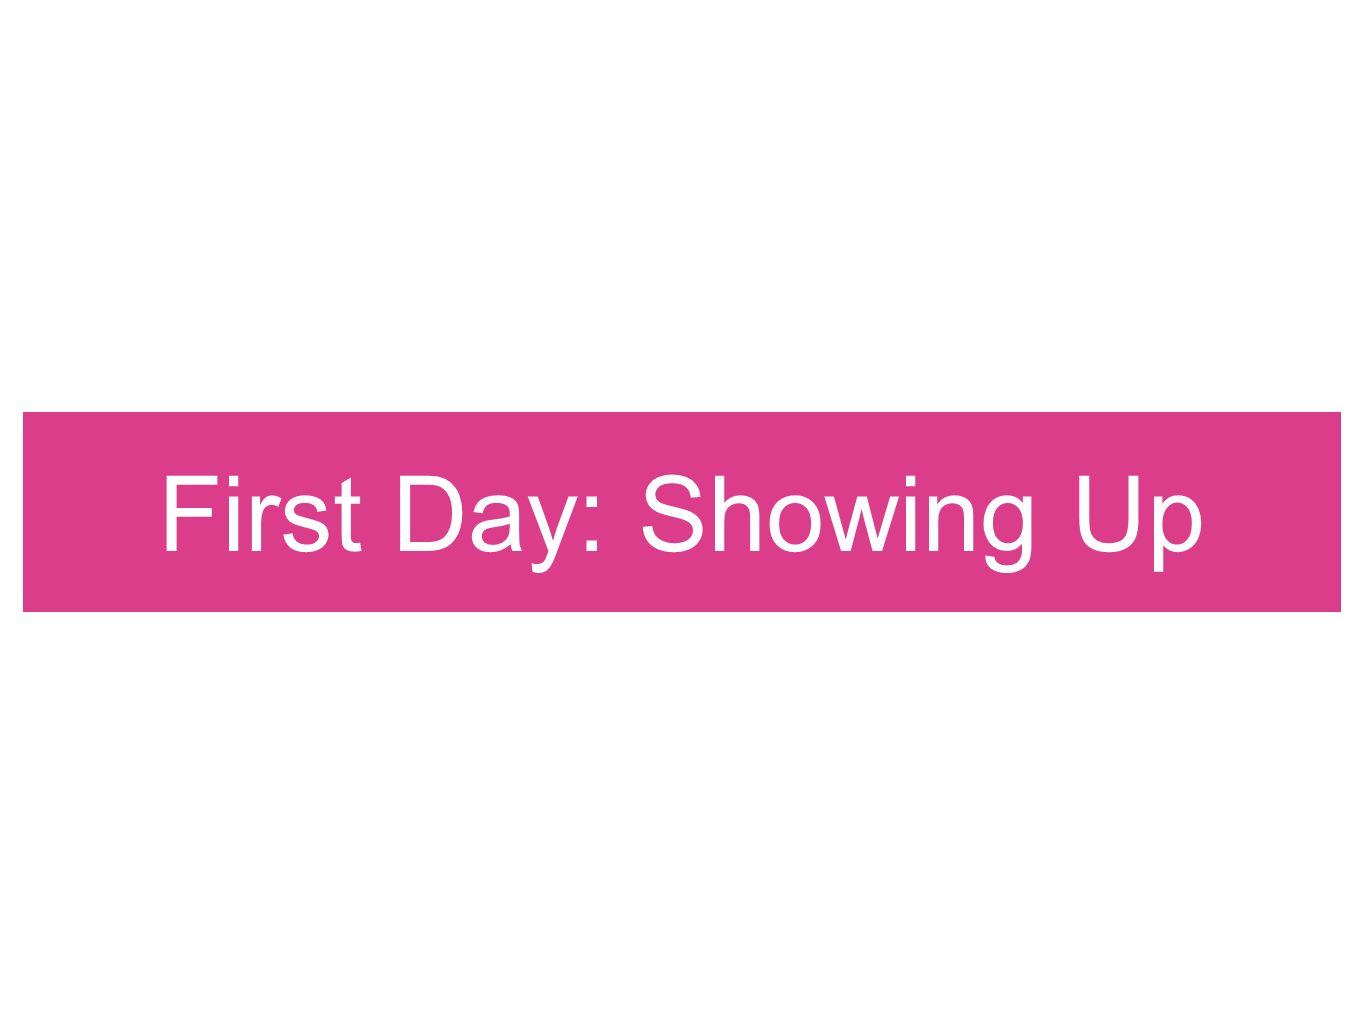 First Day: Showing Up